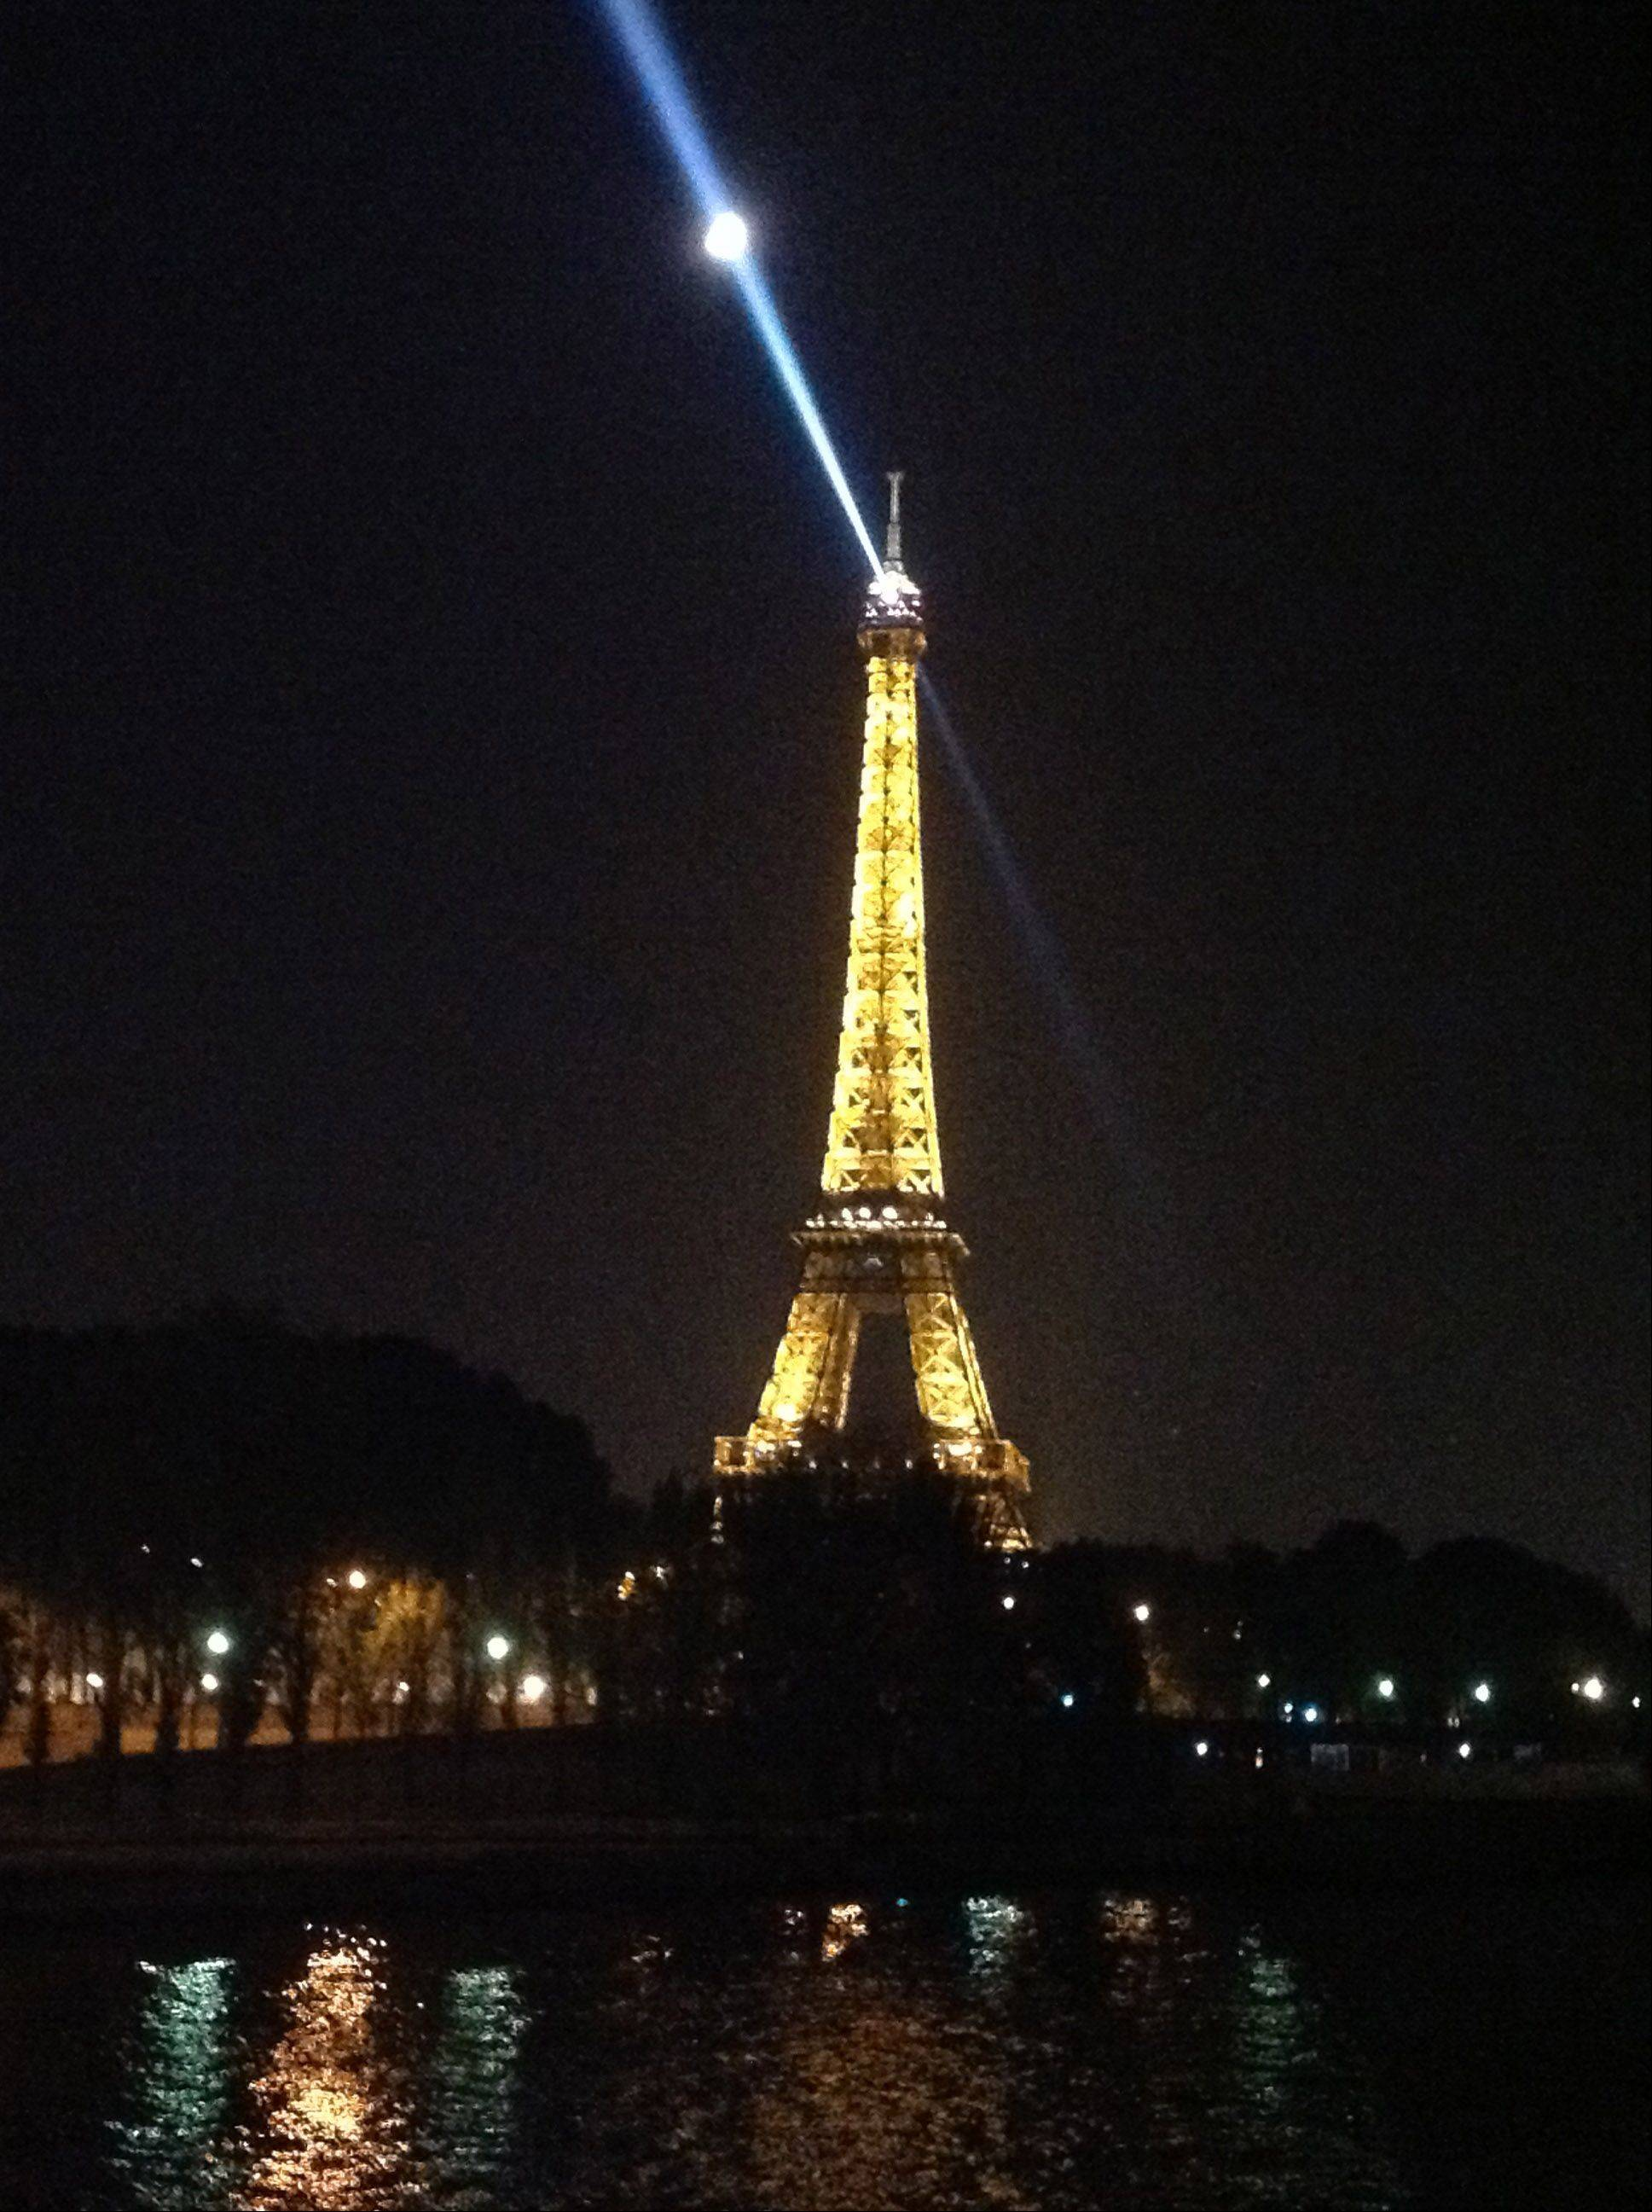 A light shines at midnight from the Eiffel Tower in Paris on October 23rd.